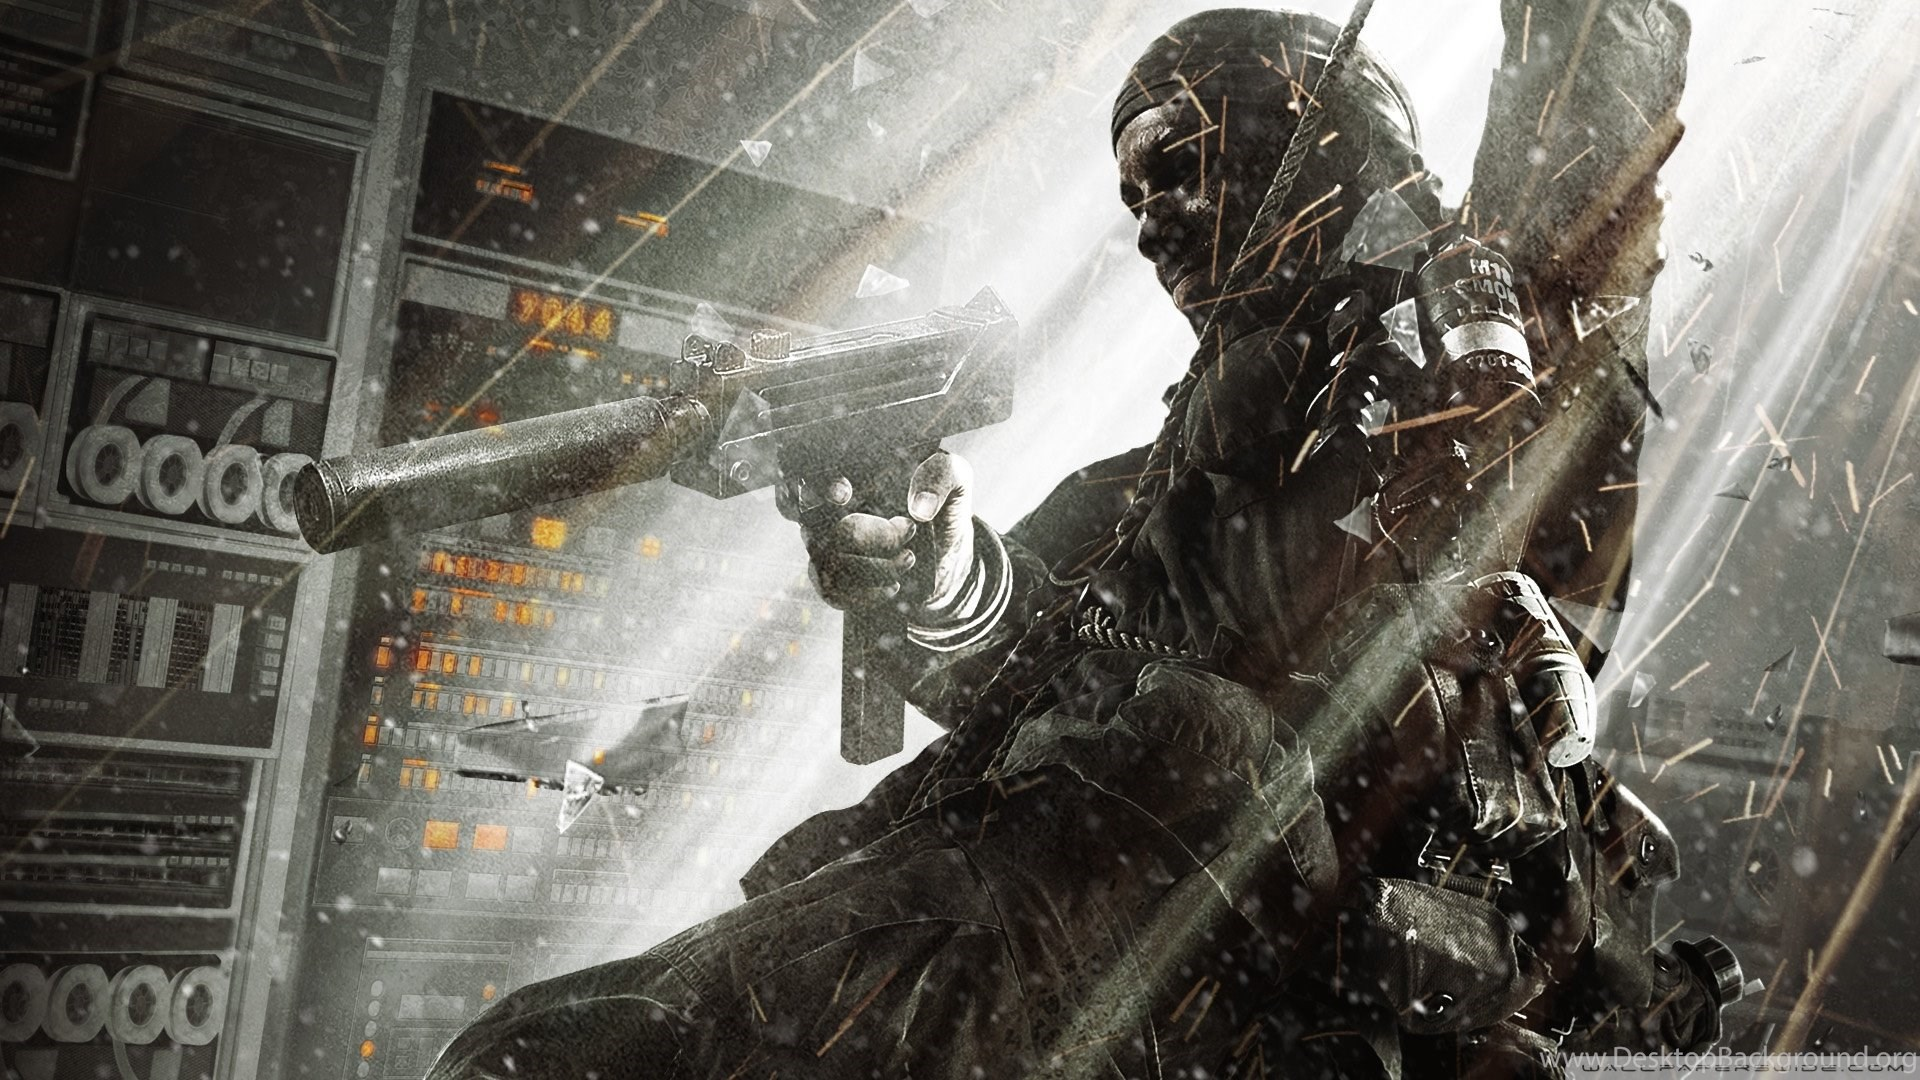 Call Of Duty Black Ops 2 Wallpaper 1920 X 1080: Call Of Duty Black Ops 4 Wallpapers 1920x1080 Desktop